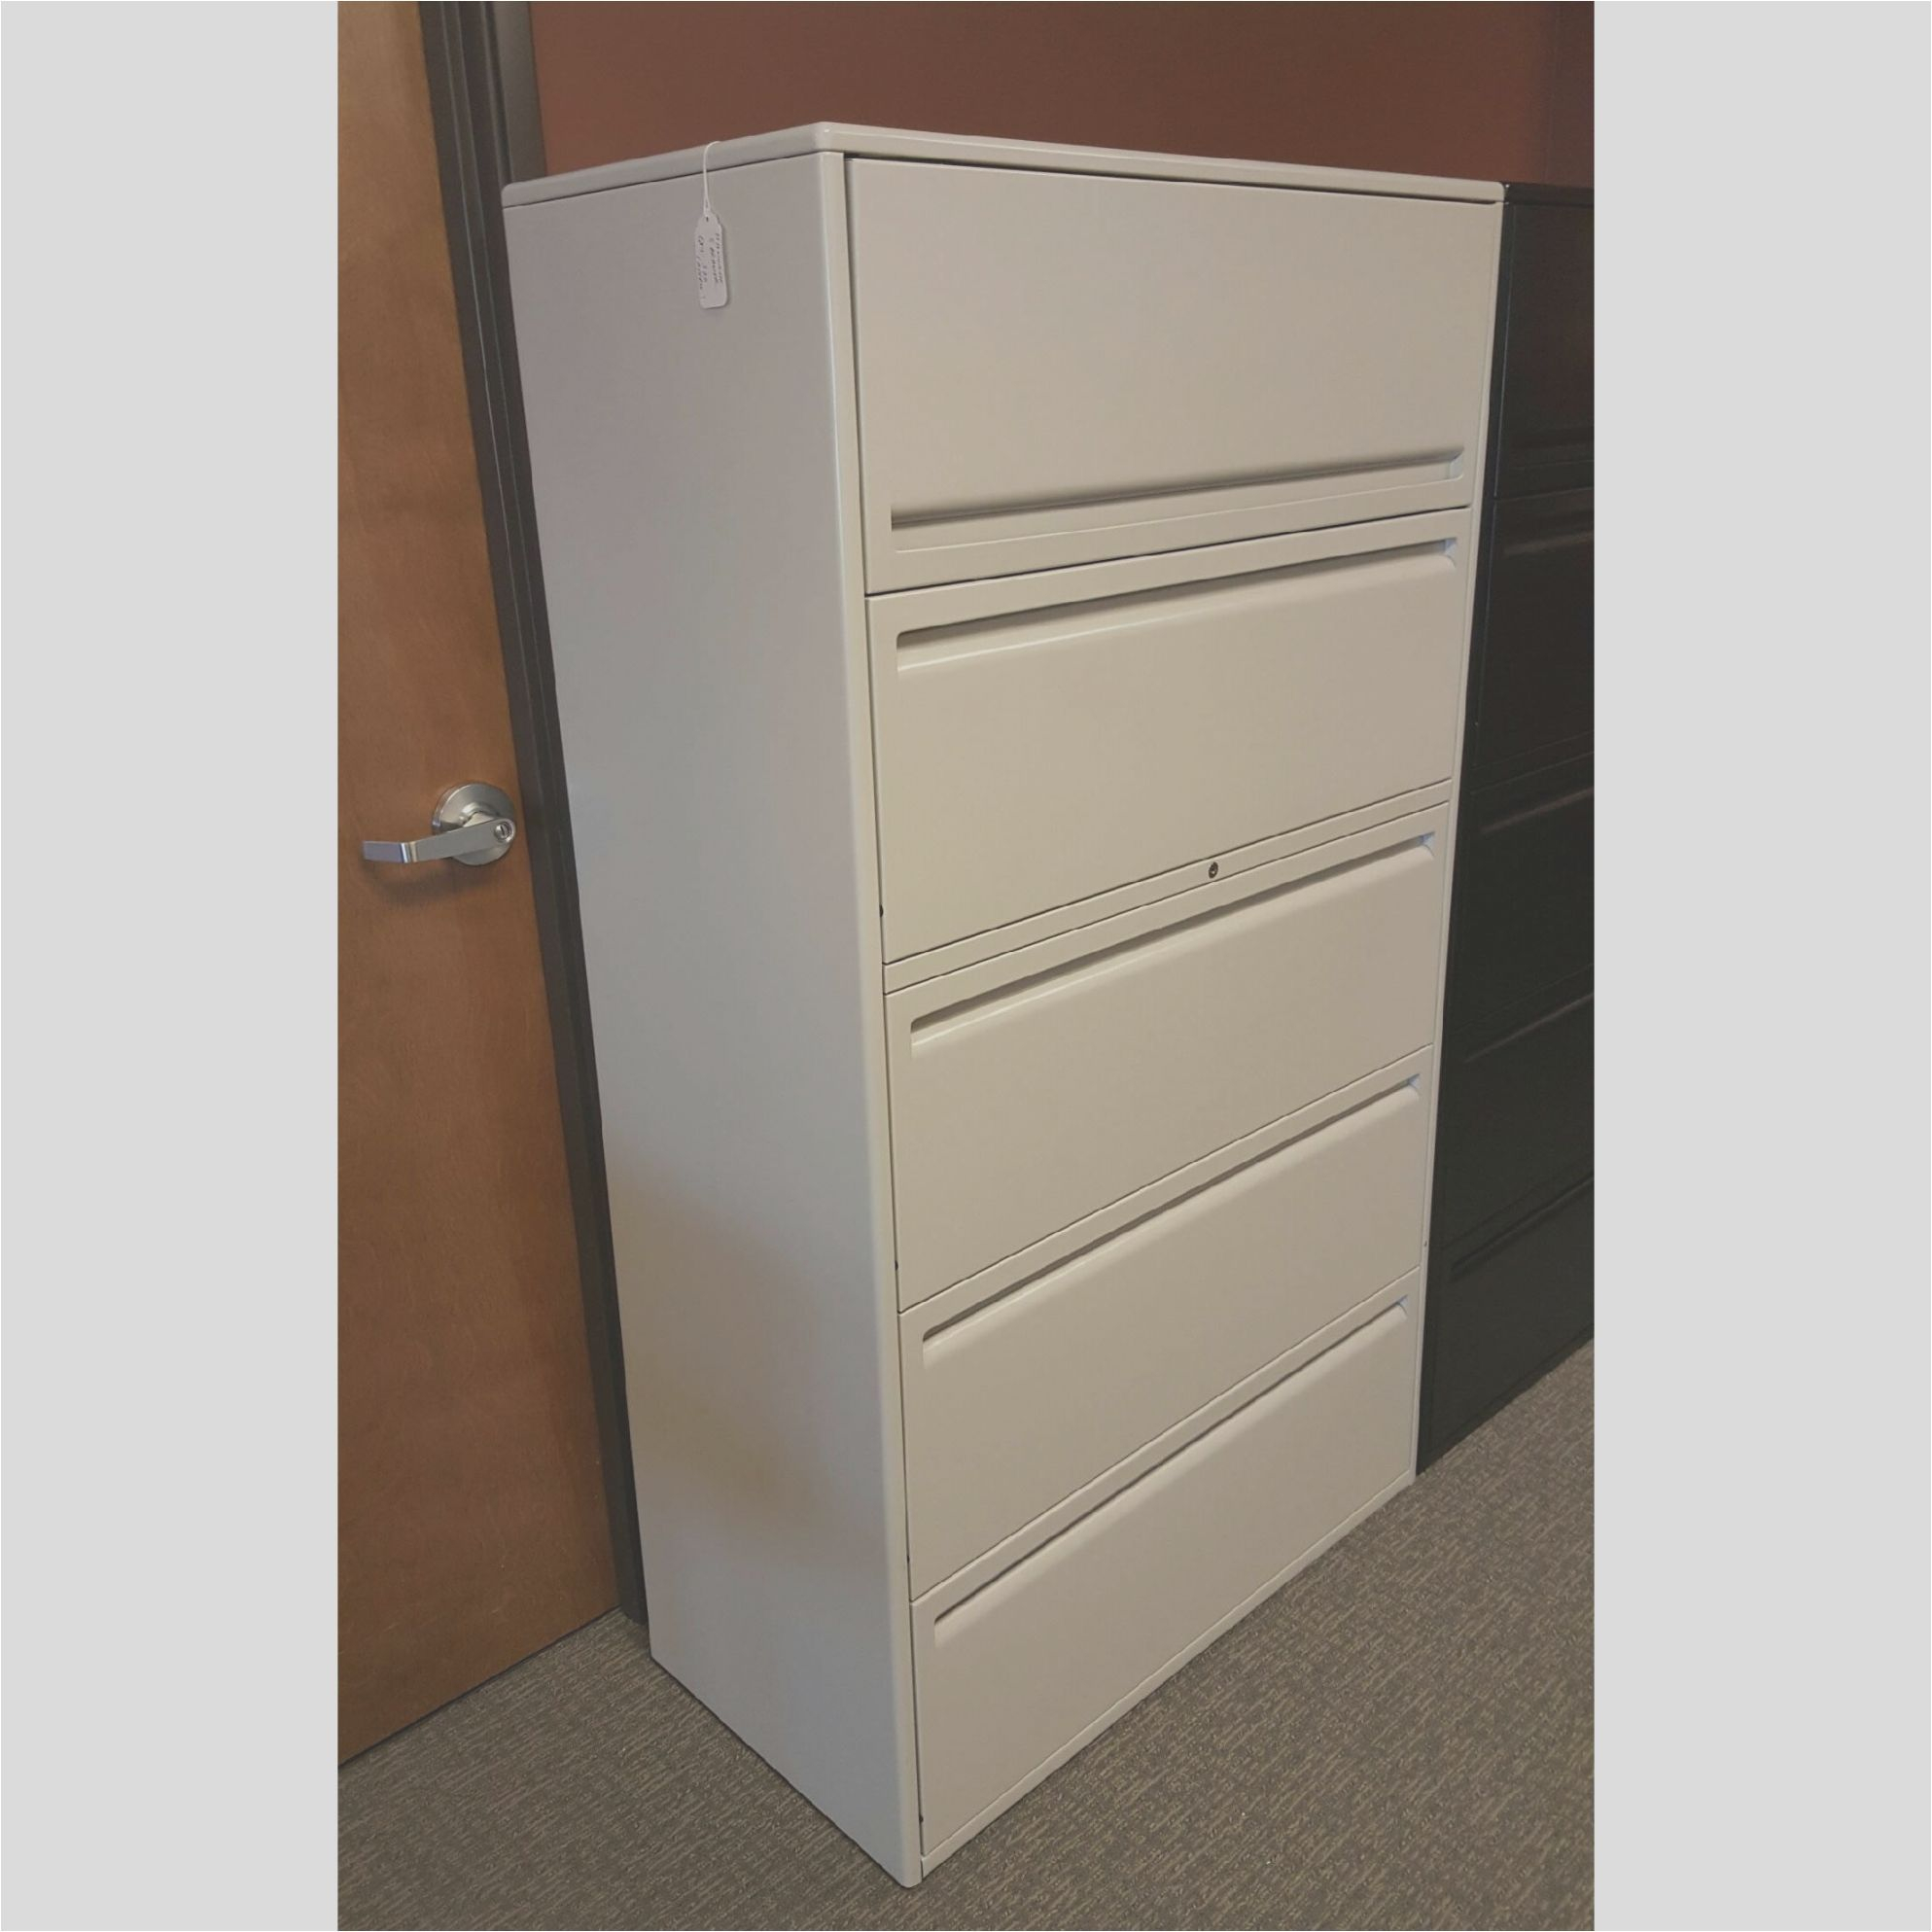 50 Casual Firesafe File Cabinet Style Firesafe File Cabinet inside dimensions 1987 X 1987